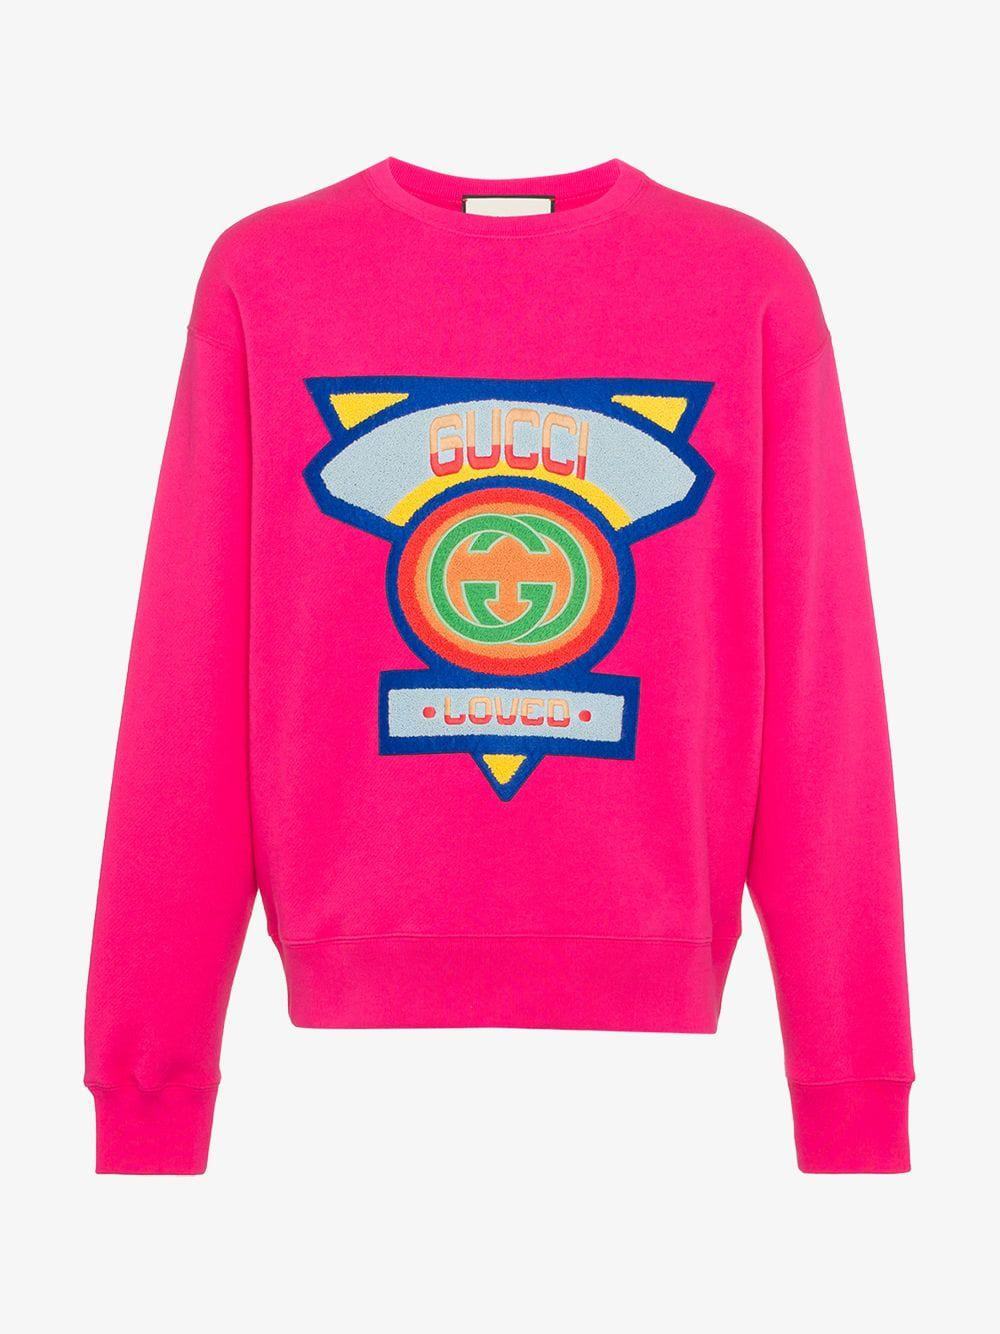 7e2a2ed85a3 Lyst - Gucci Sweatshirt With  80s Patch in Pink for Men